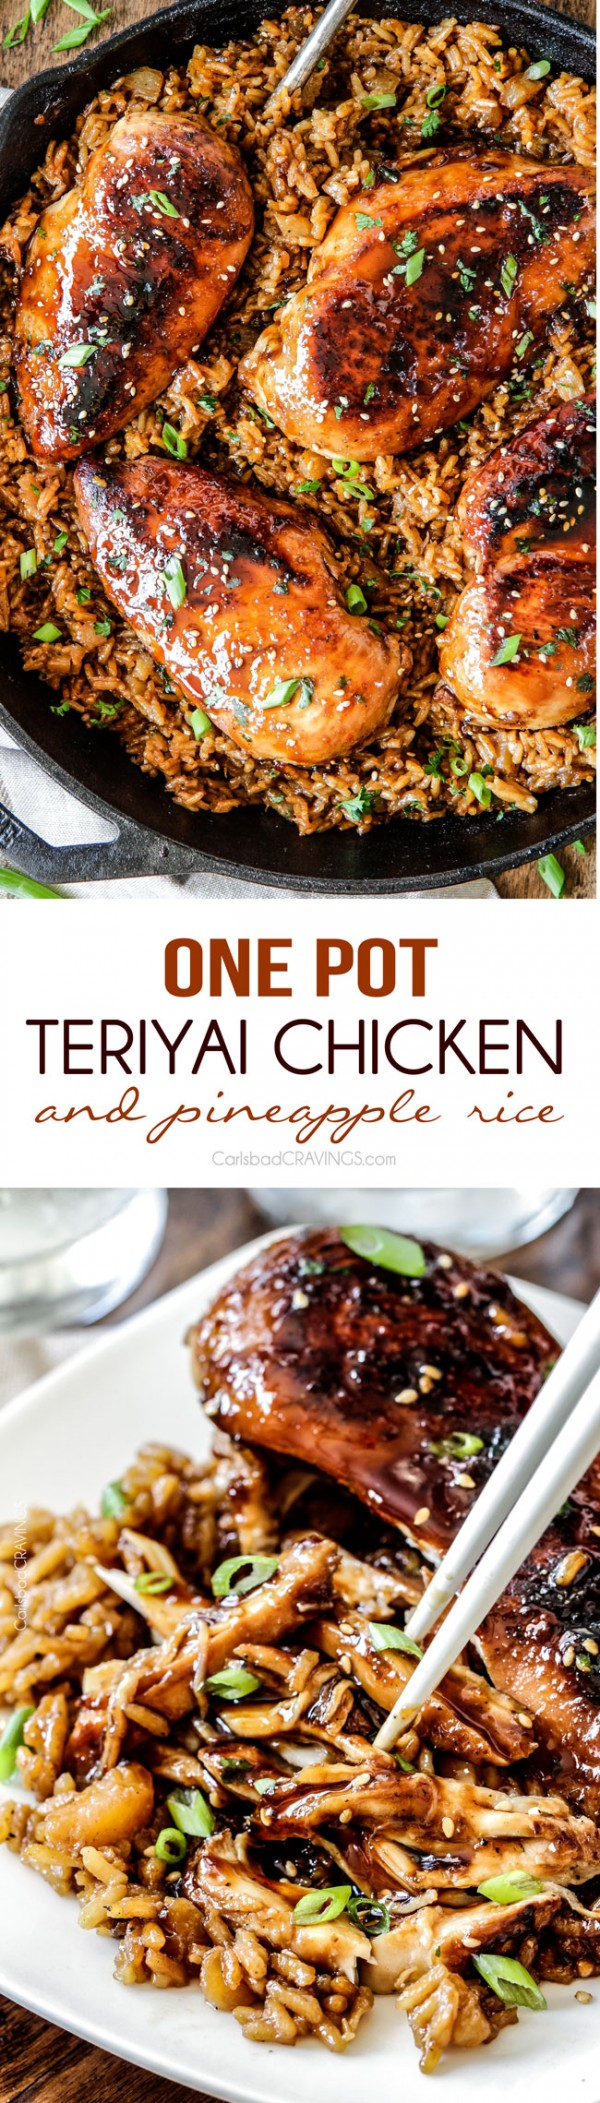 Get the recipe Teriyaki Chicken and Pineapple Rice @recipes_to_go